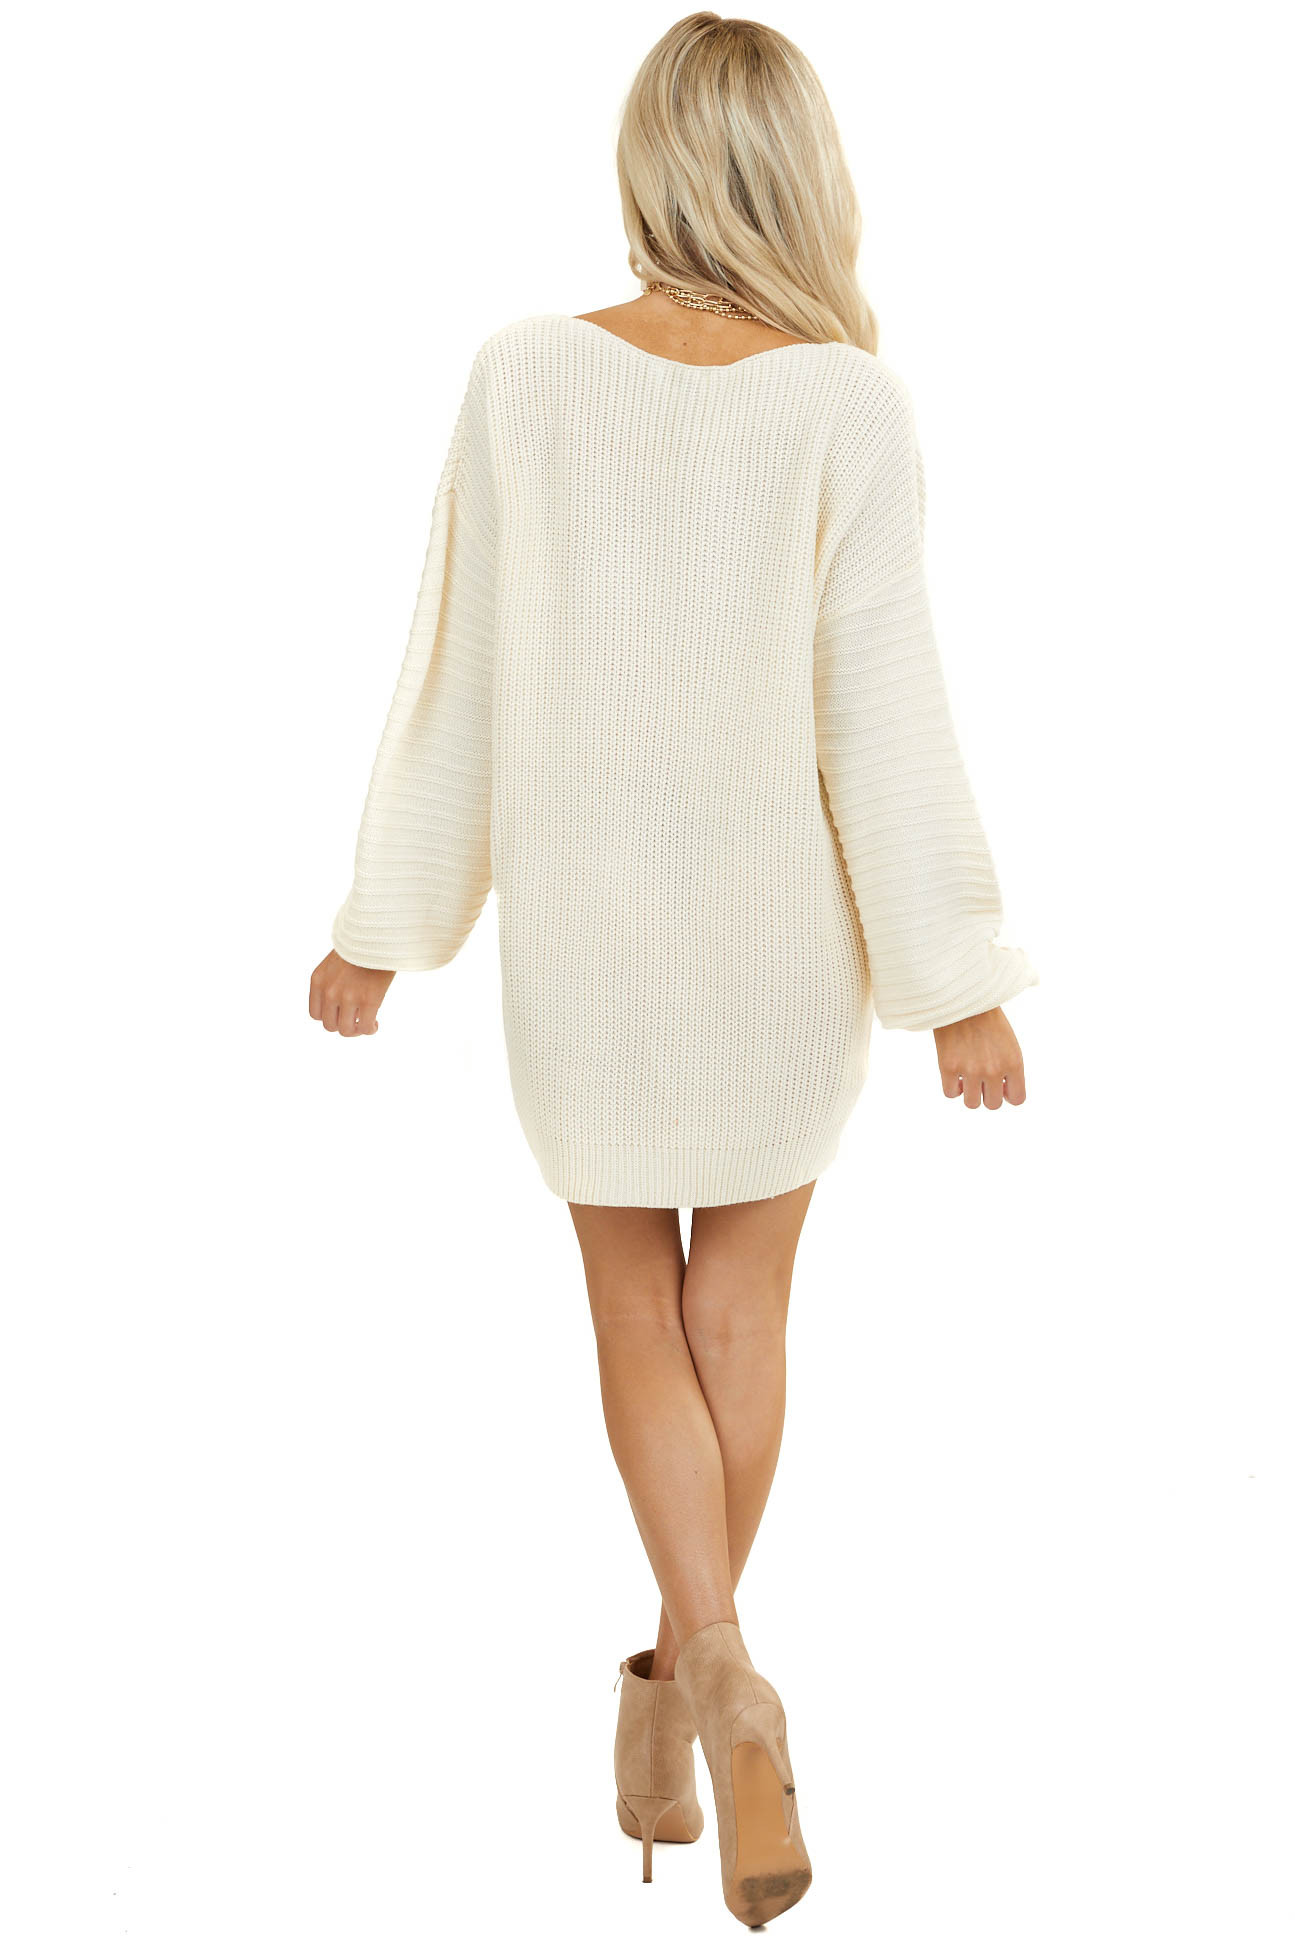 Cream Knit Sweater Dress with Long Drop Shoulder Sleeves